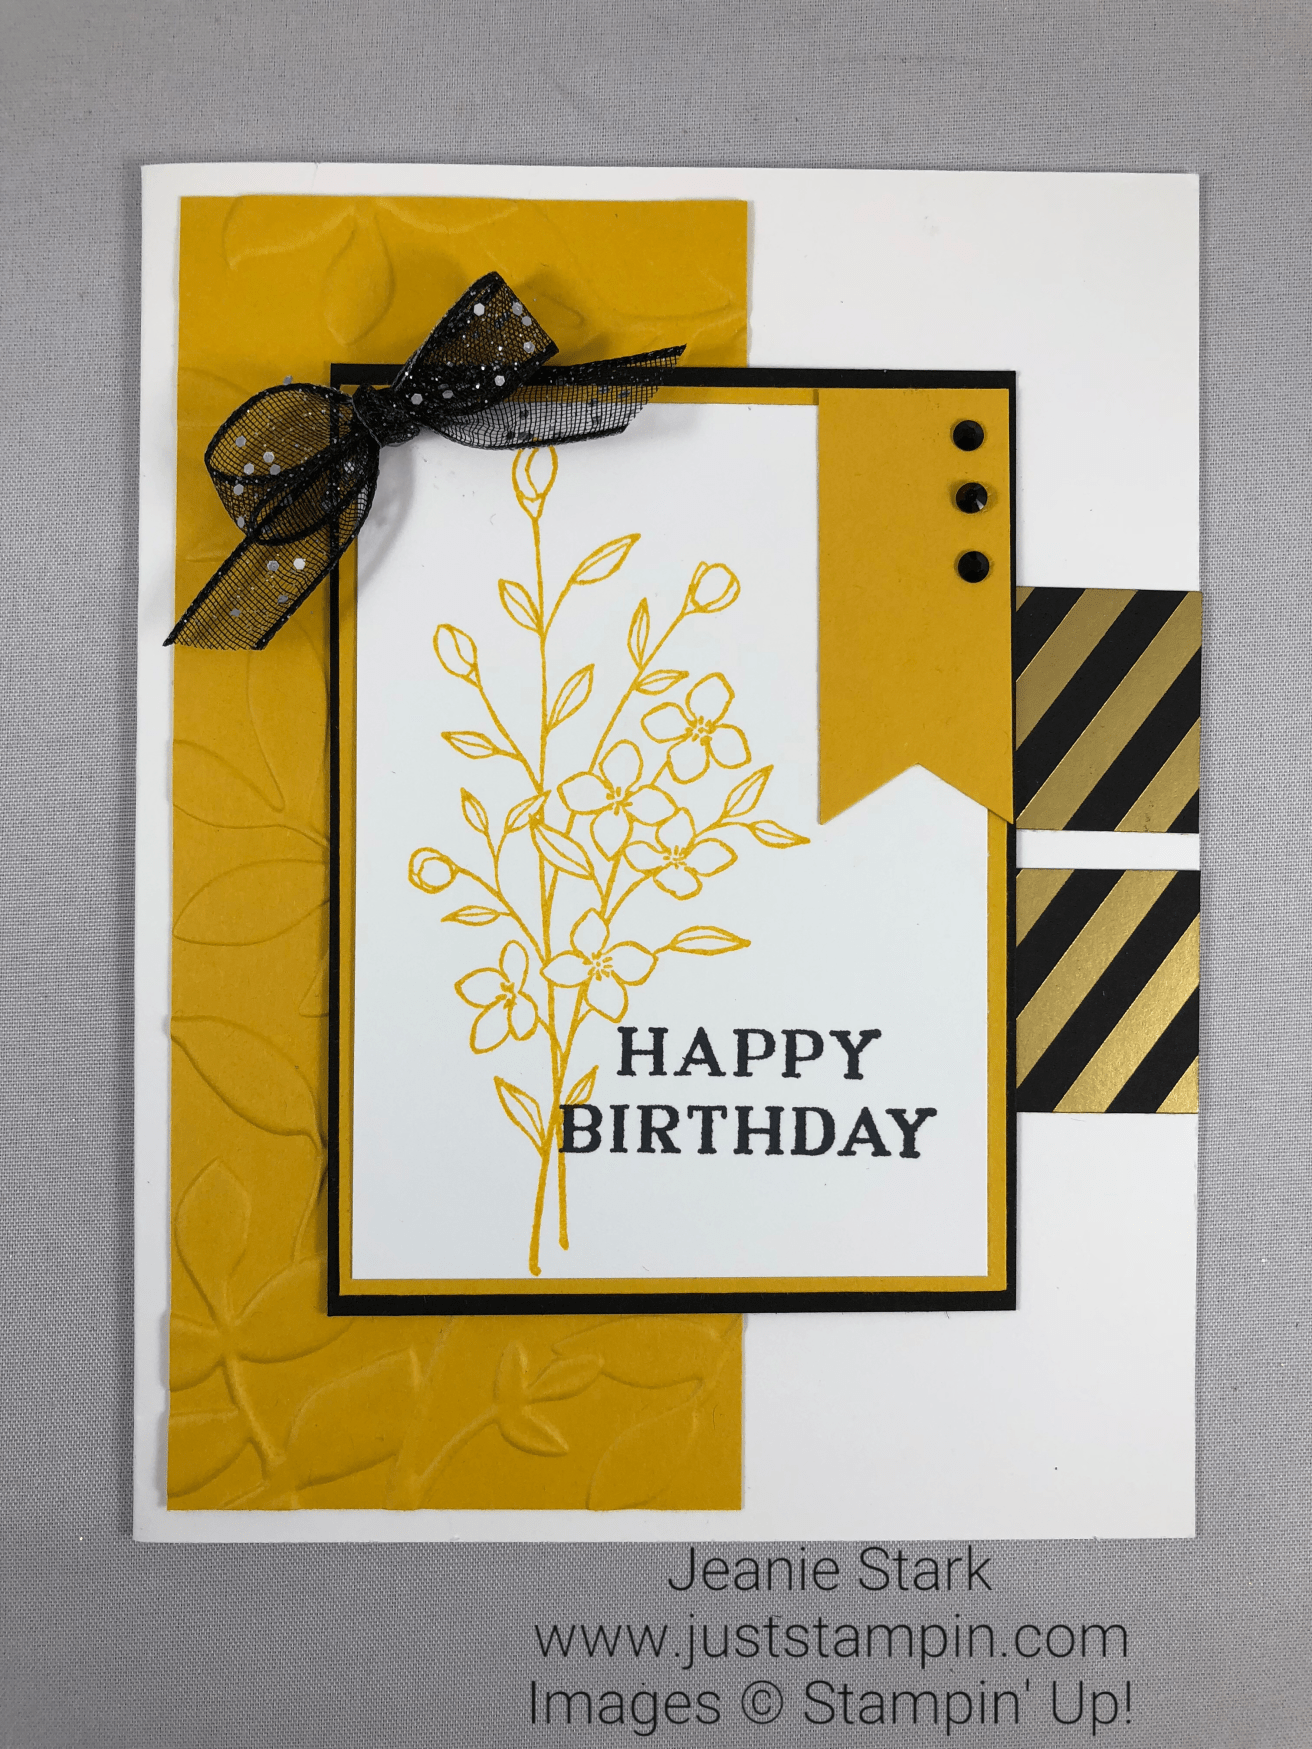 Stampin Up Touches Of Texture And Perennial Birthday Embossed Card Idea